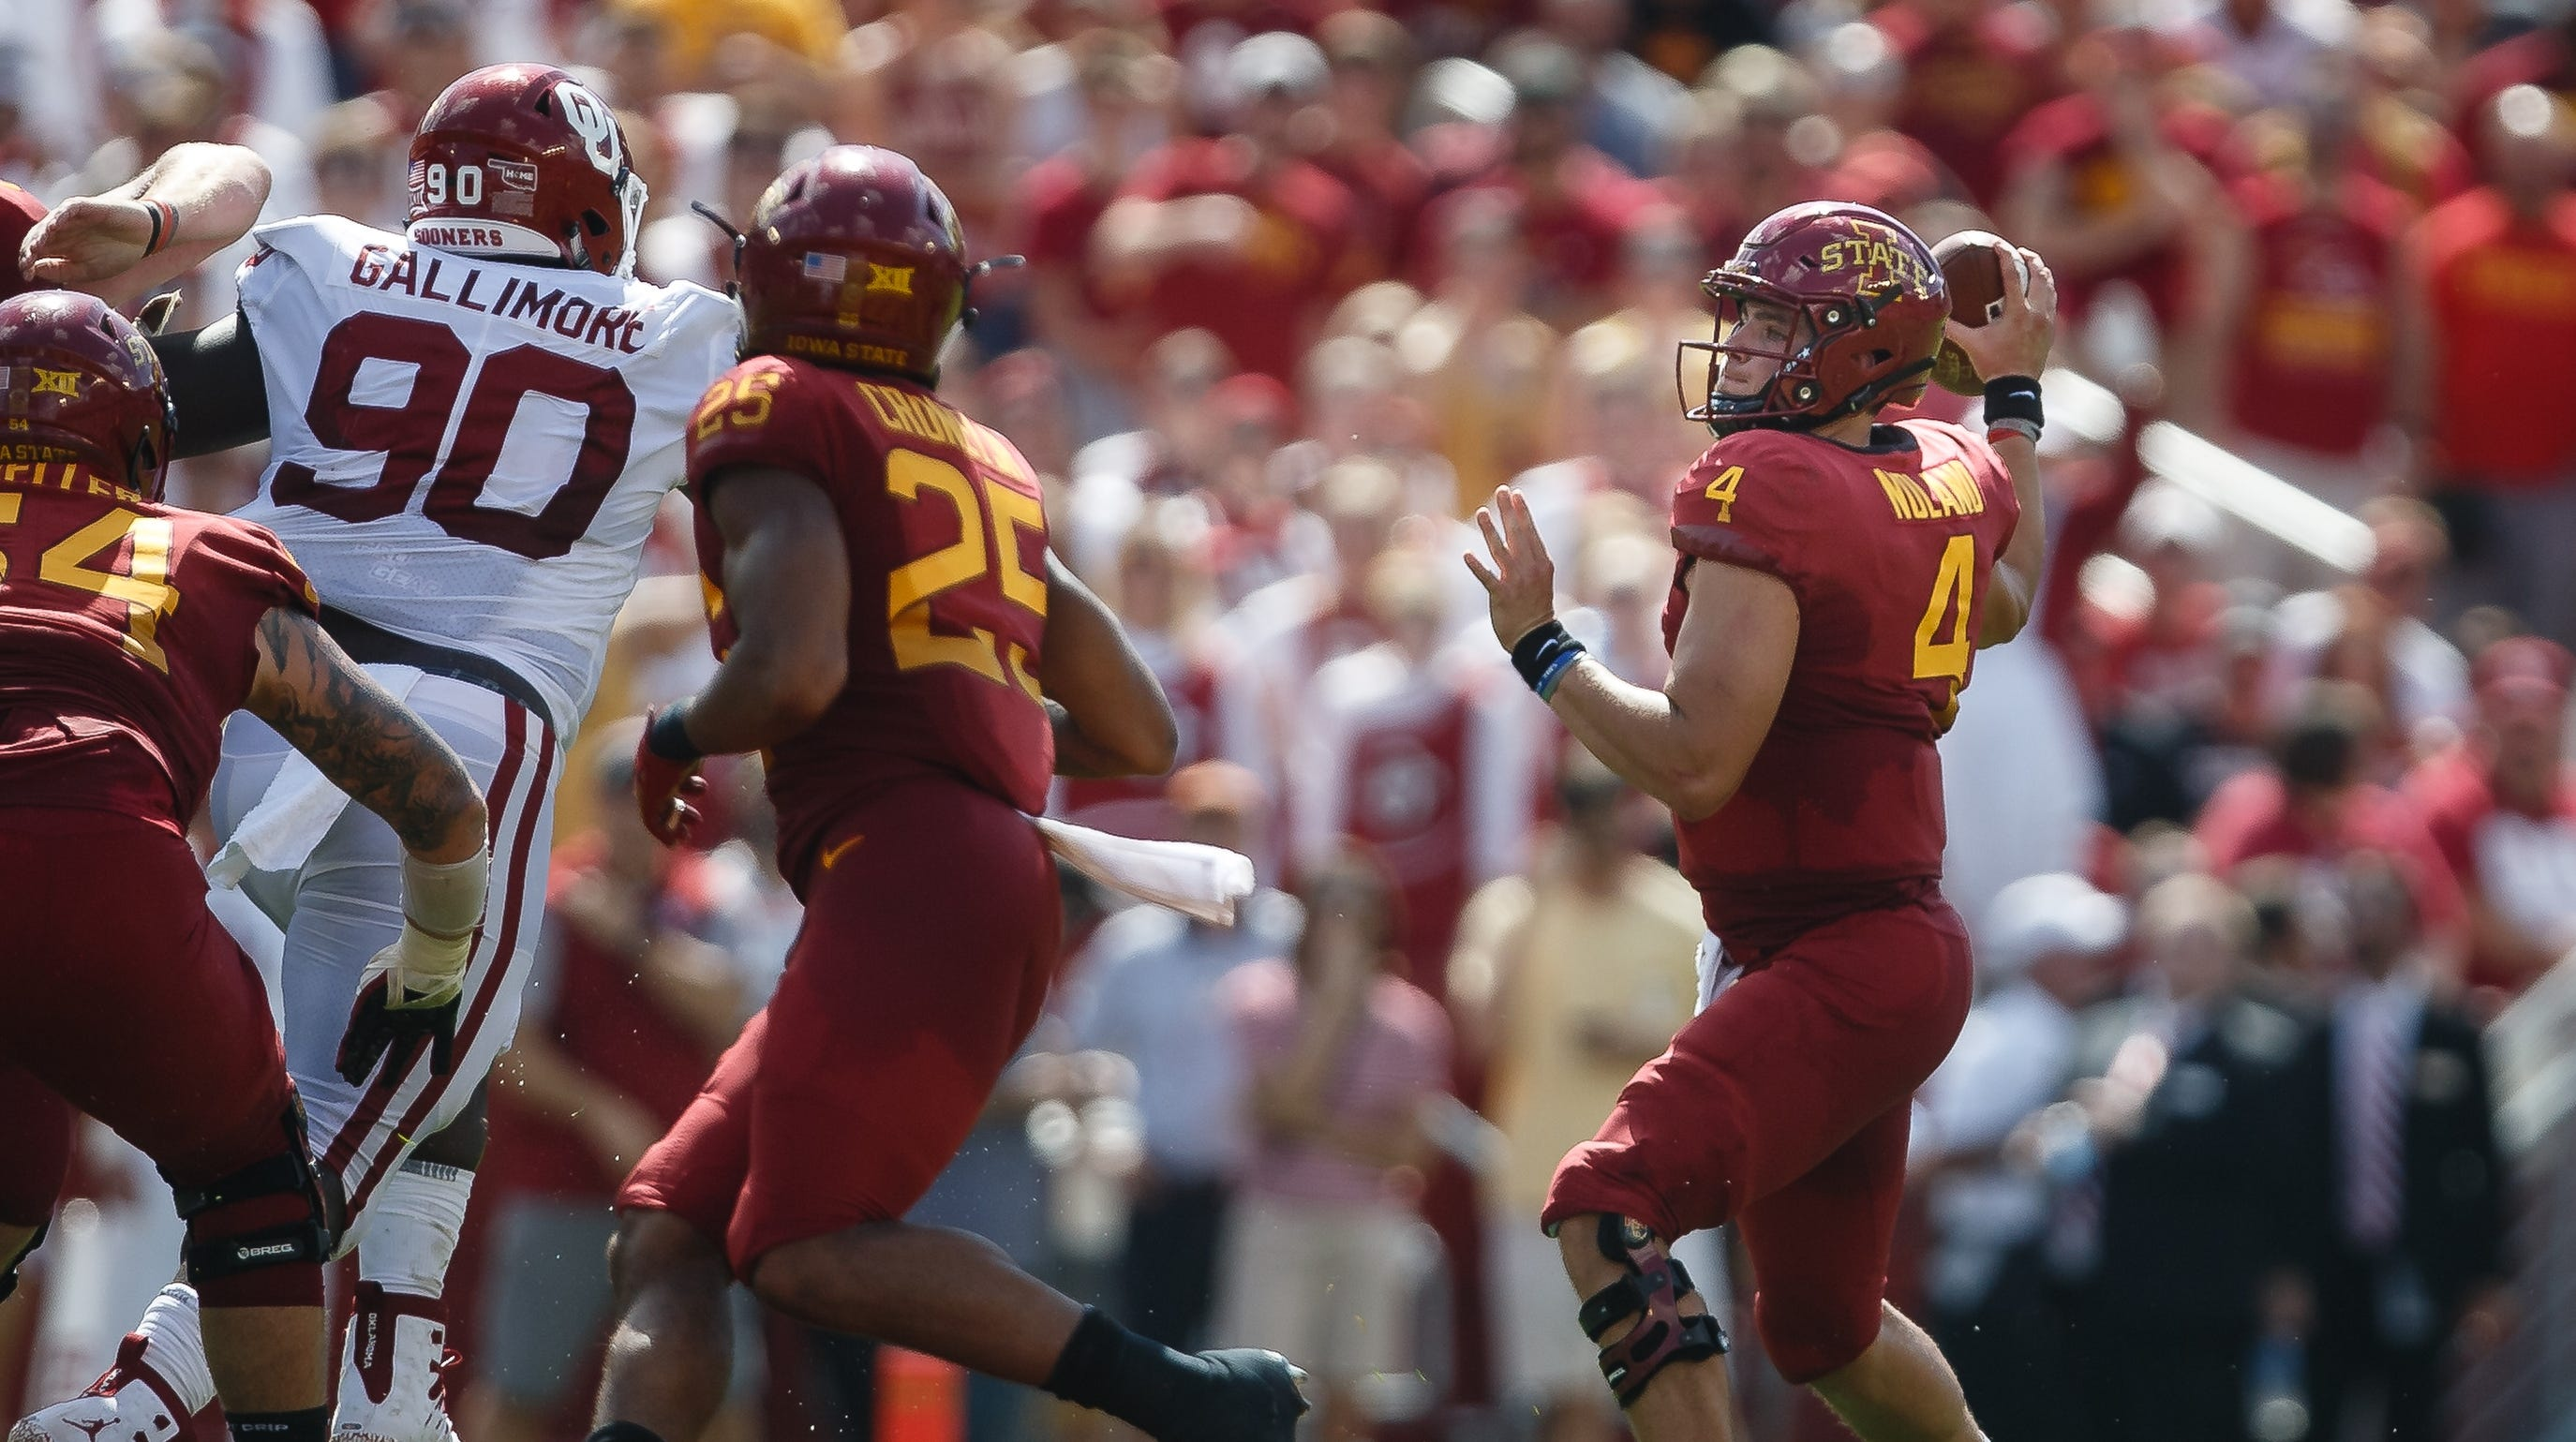 Peterson: Zeb and Hakeem is an Iowa State pitch-and-catch connection worth watching